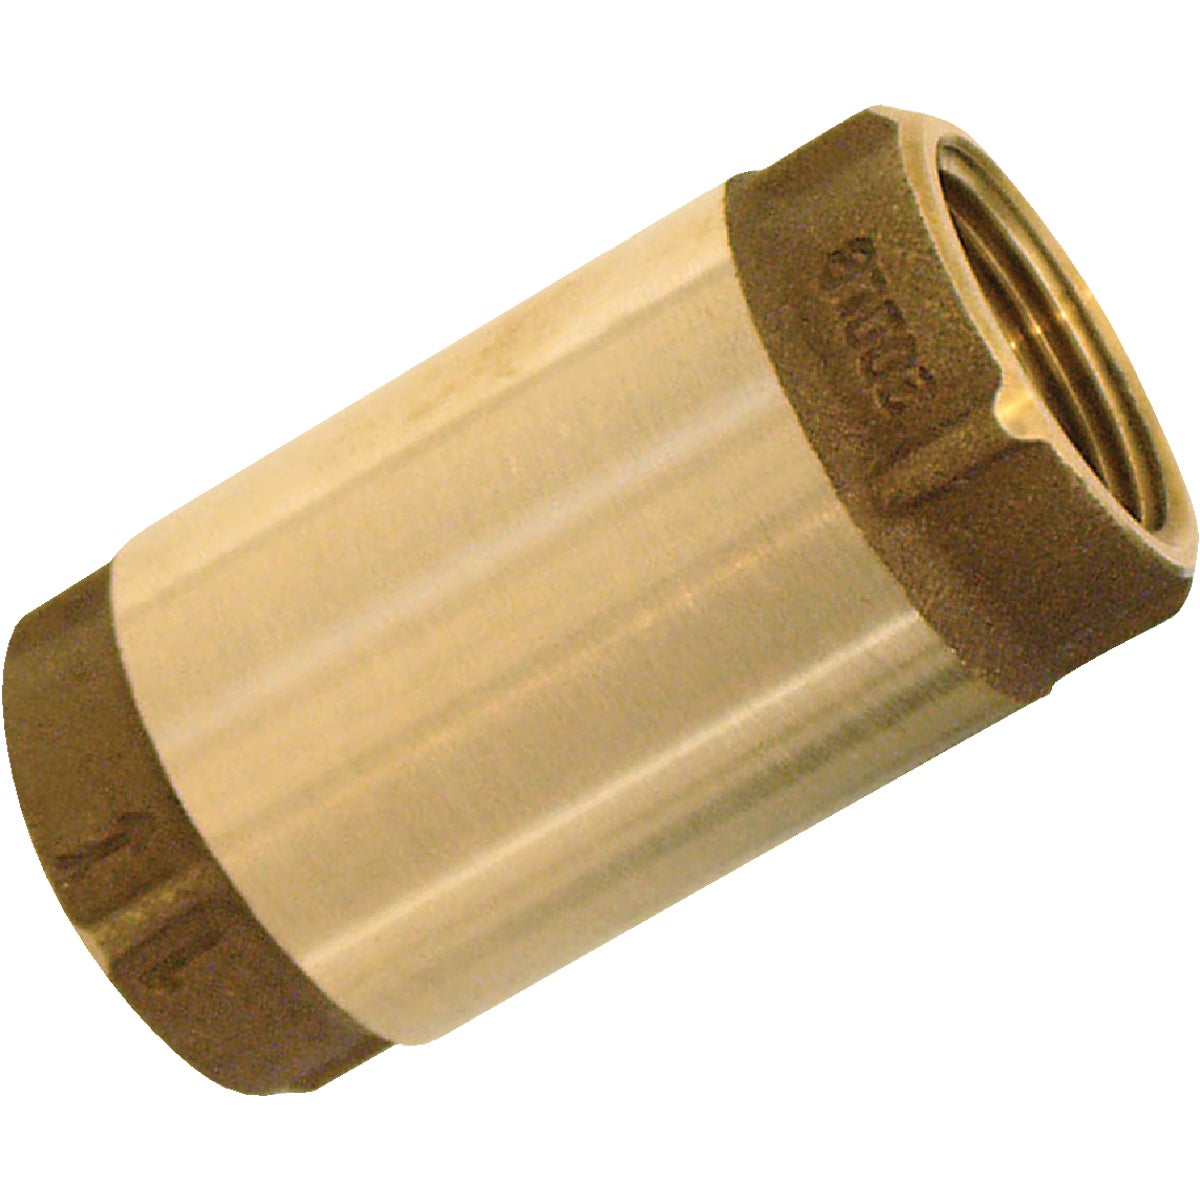 "1"" LF CHECK VALVE - 7503 by Simmons Mfg Co"